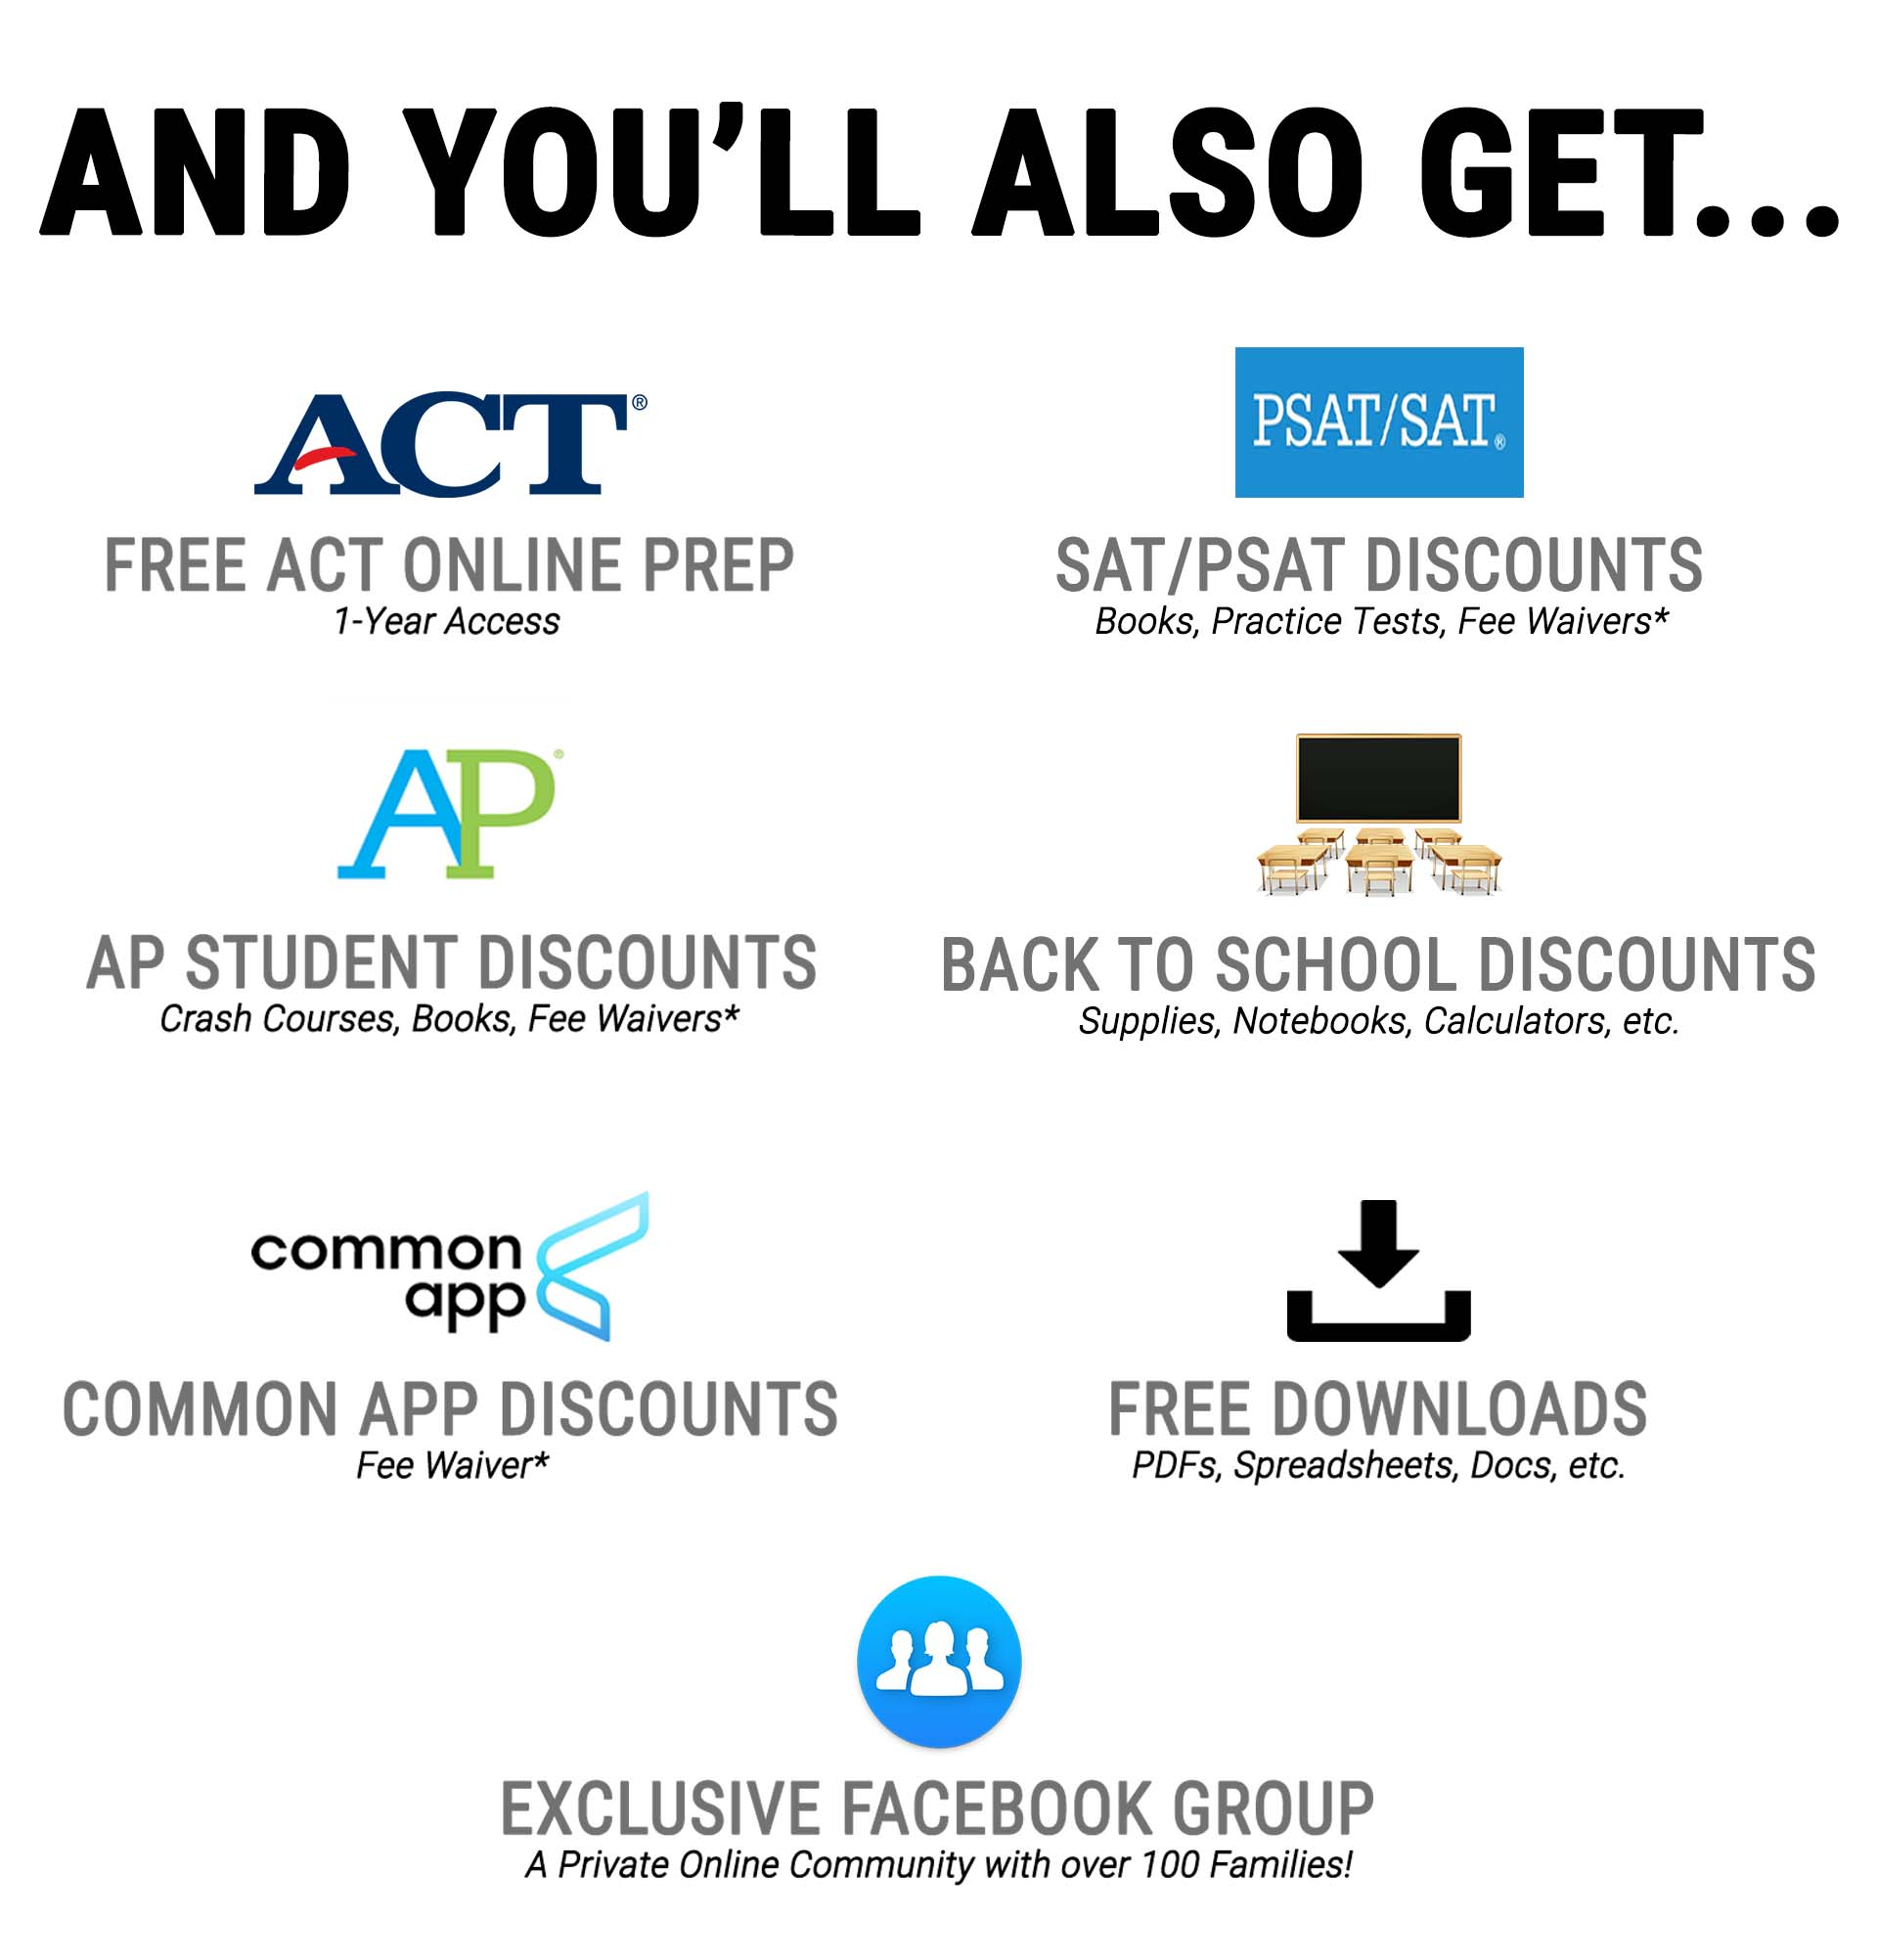 And you will also get... Best College Aid Bonuses